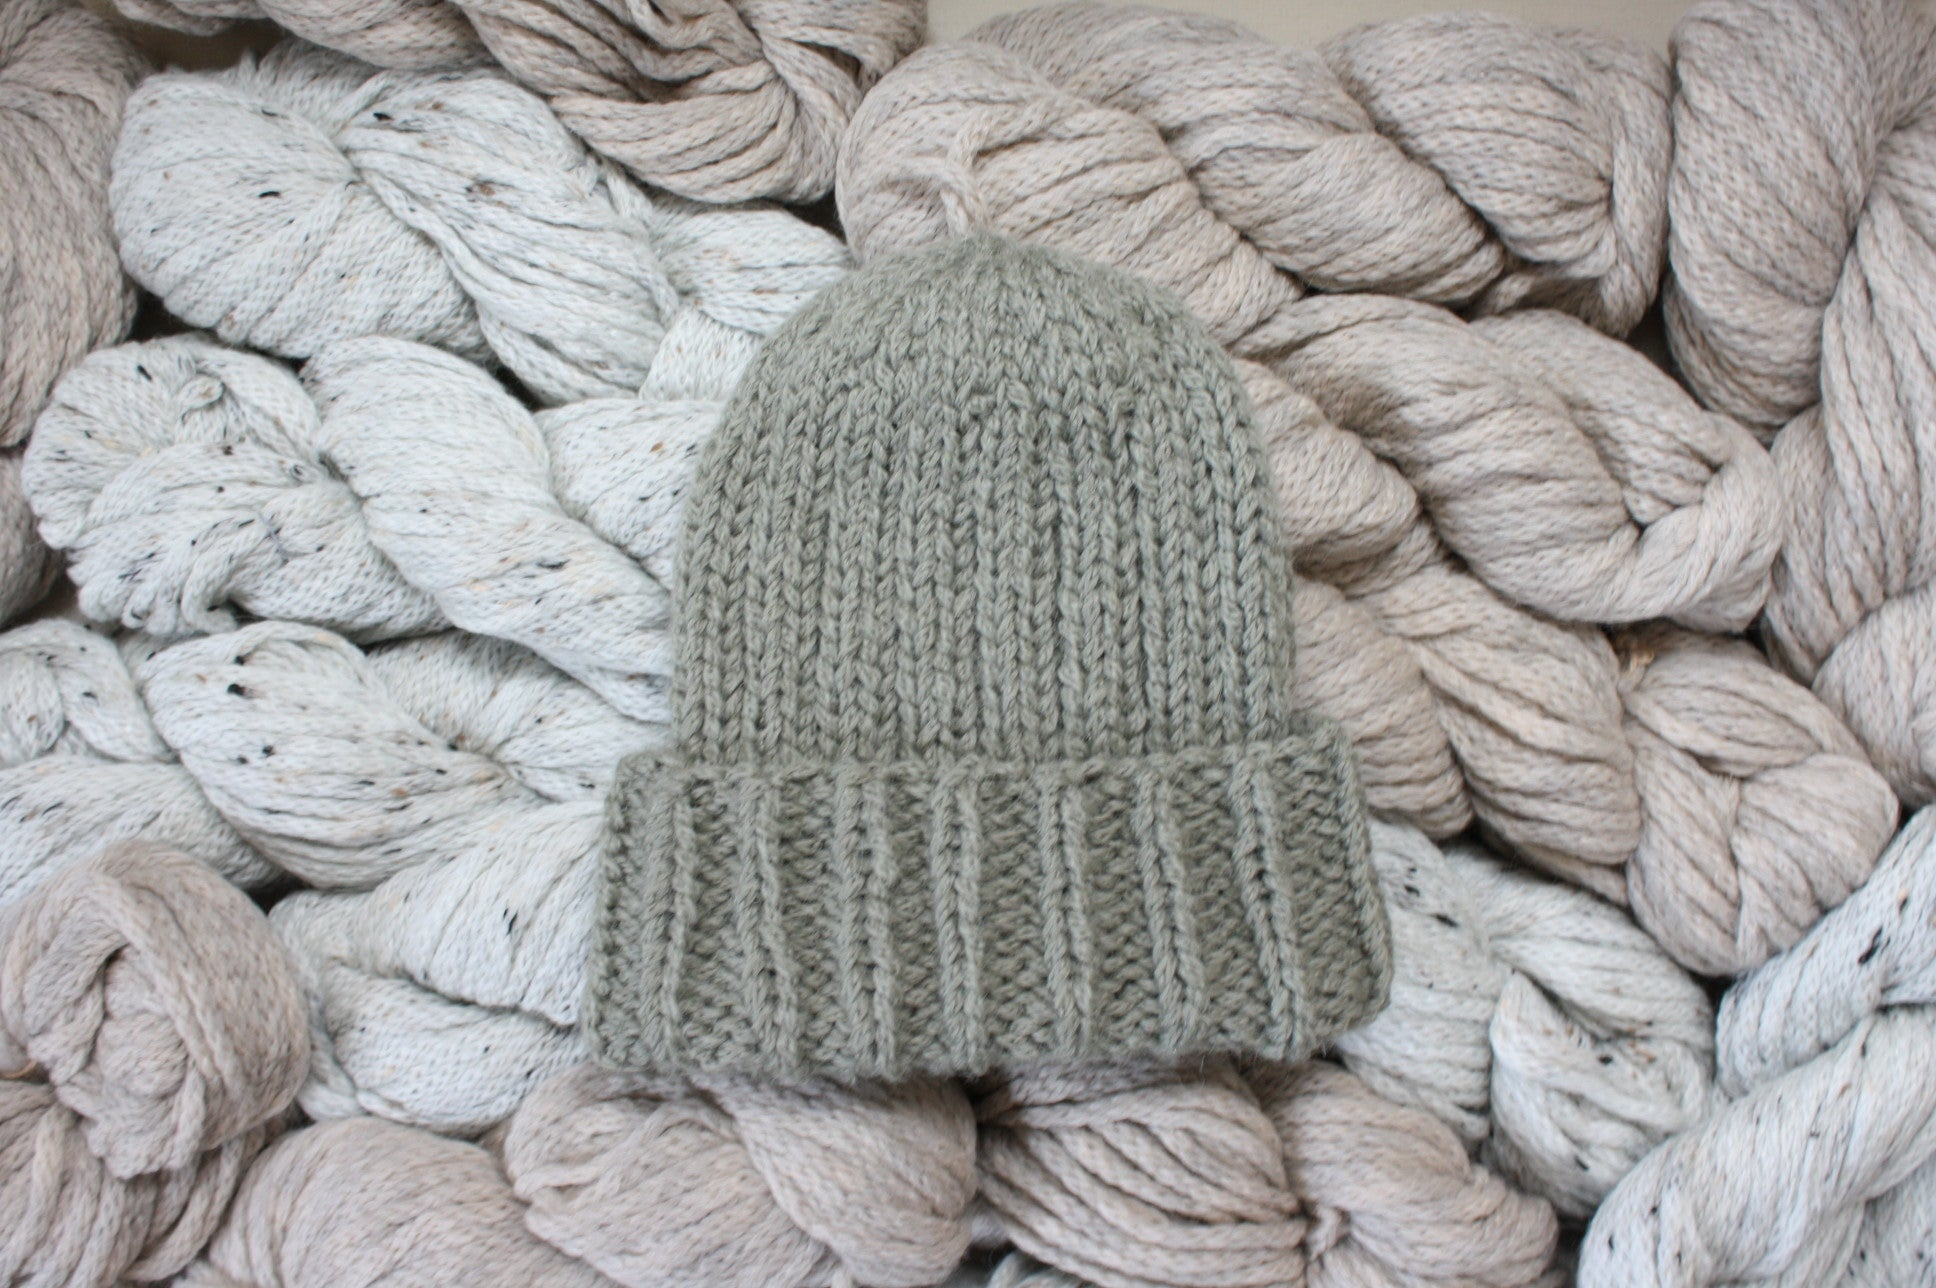 Quarry Knit Beanie in Charcoal Gray Alpaca Merino Wool Men's Hat